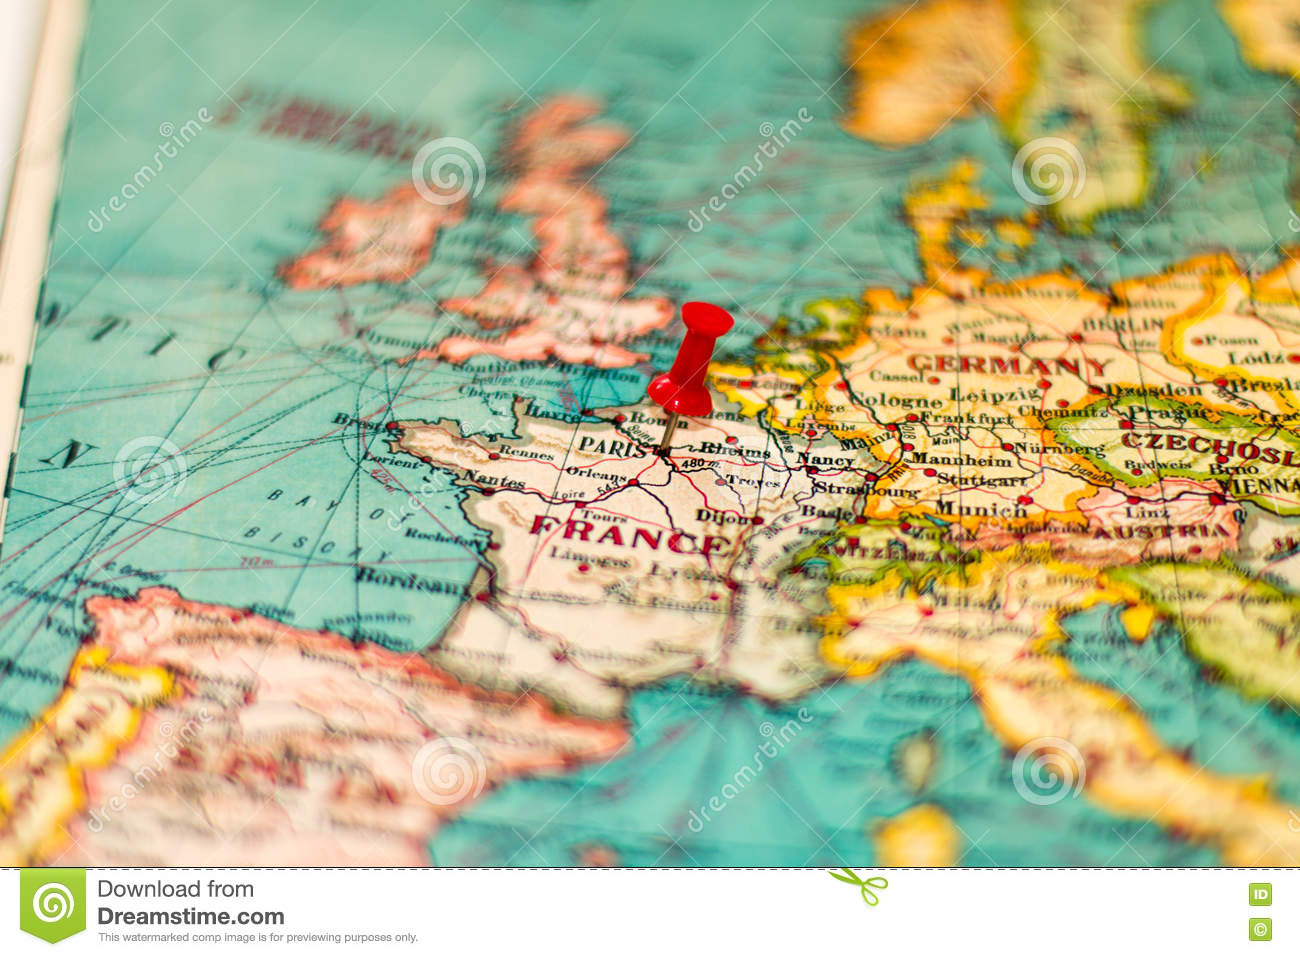 Paris Europe Map.Paris France Pinned On Vintage Map Of Europe Stock Photo Image Of